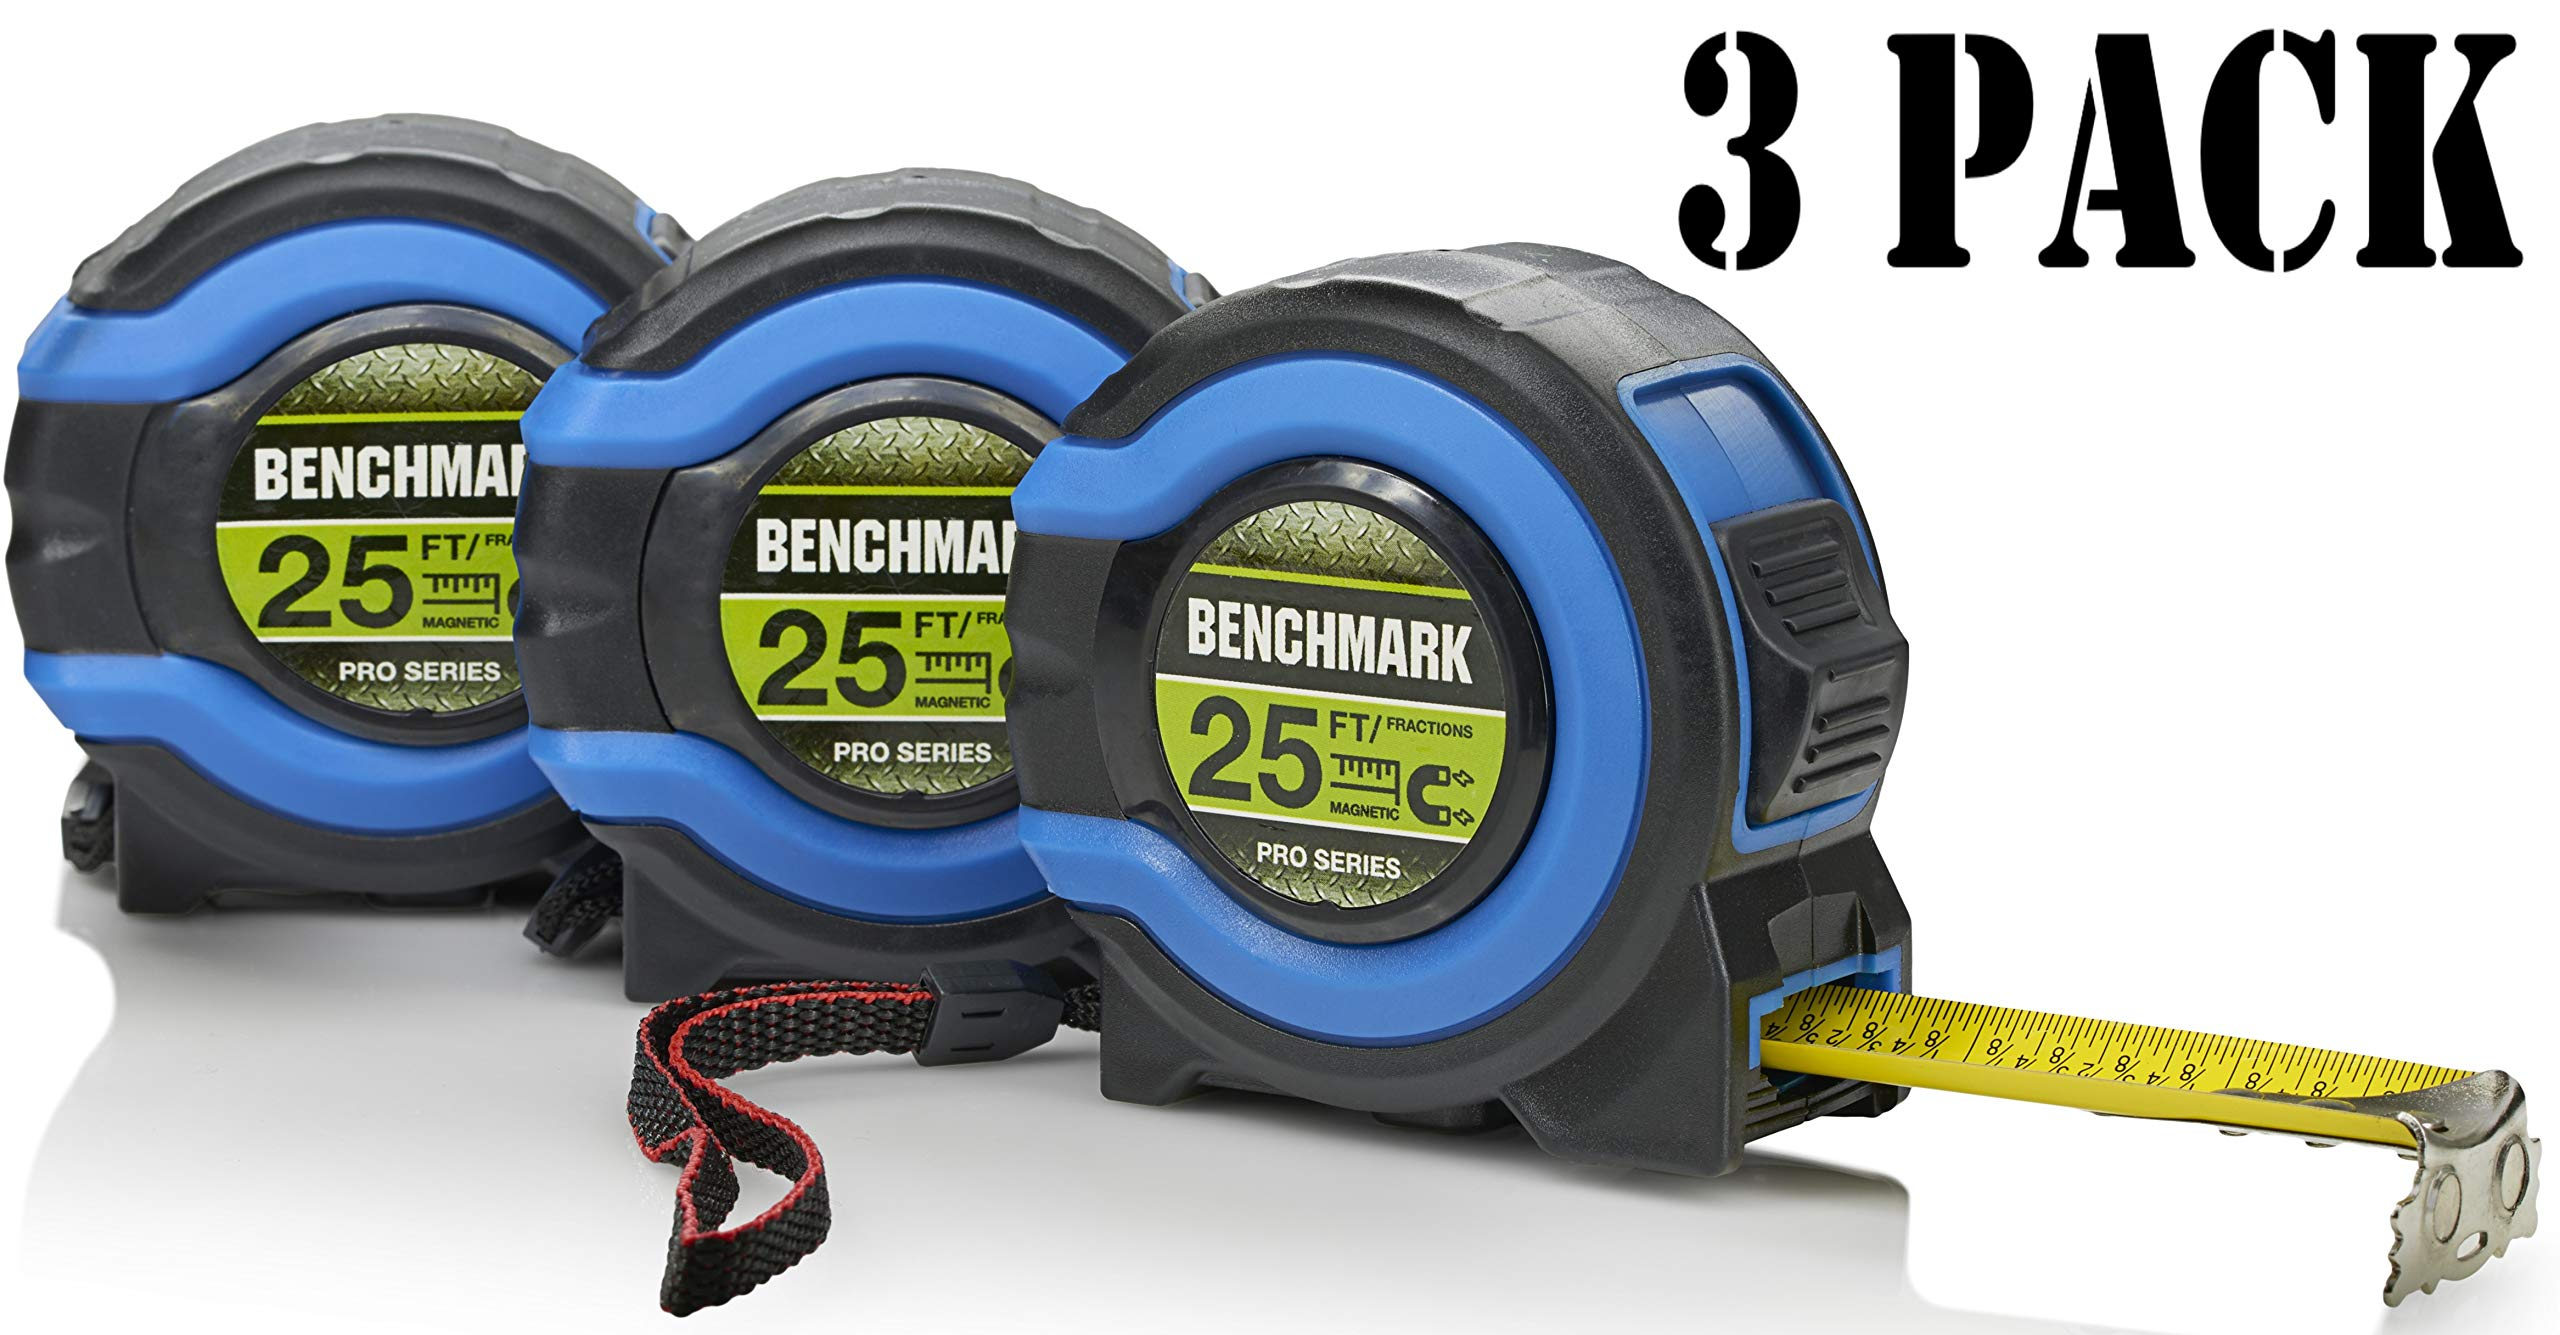 3 Pack - 25 FT - Benchmark Tape Measure / Measuring Tape - Easy to Read Fractions - Large Magnetic Claw Tip - Bulk Pack